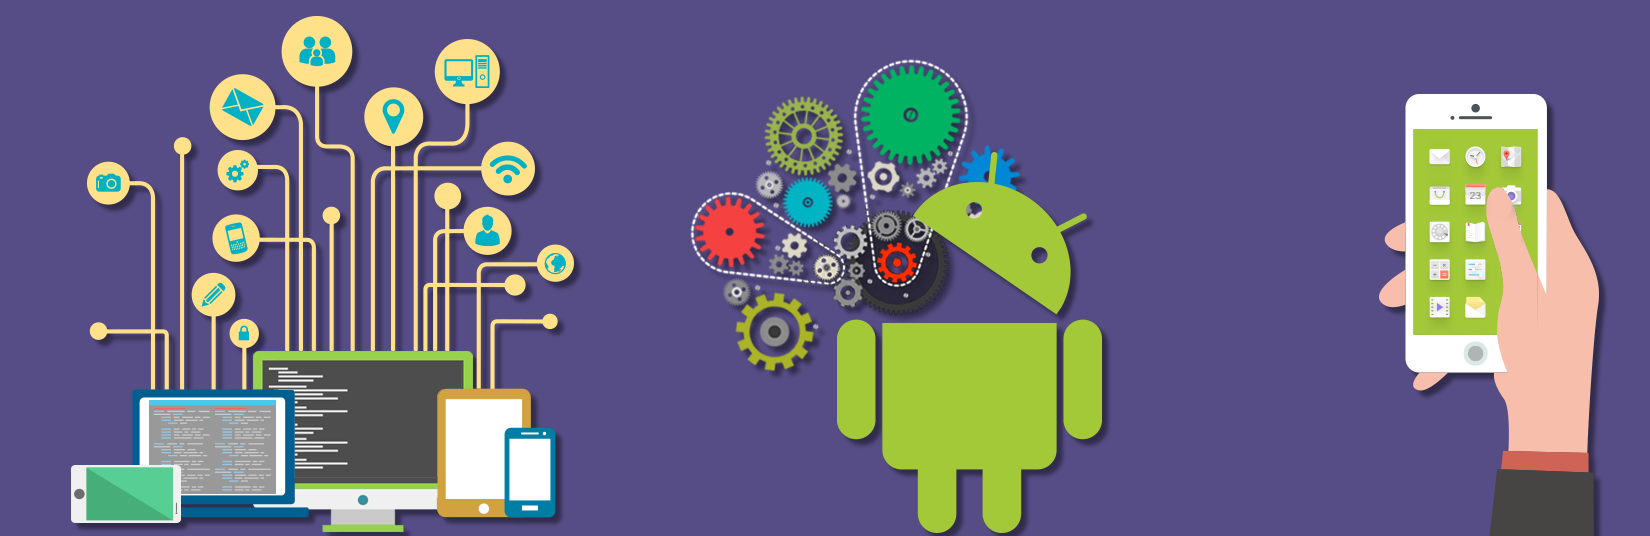 stunning android app development